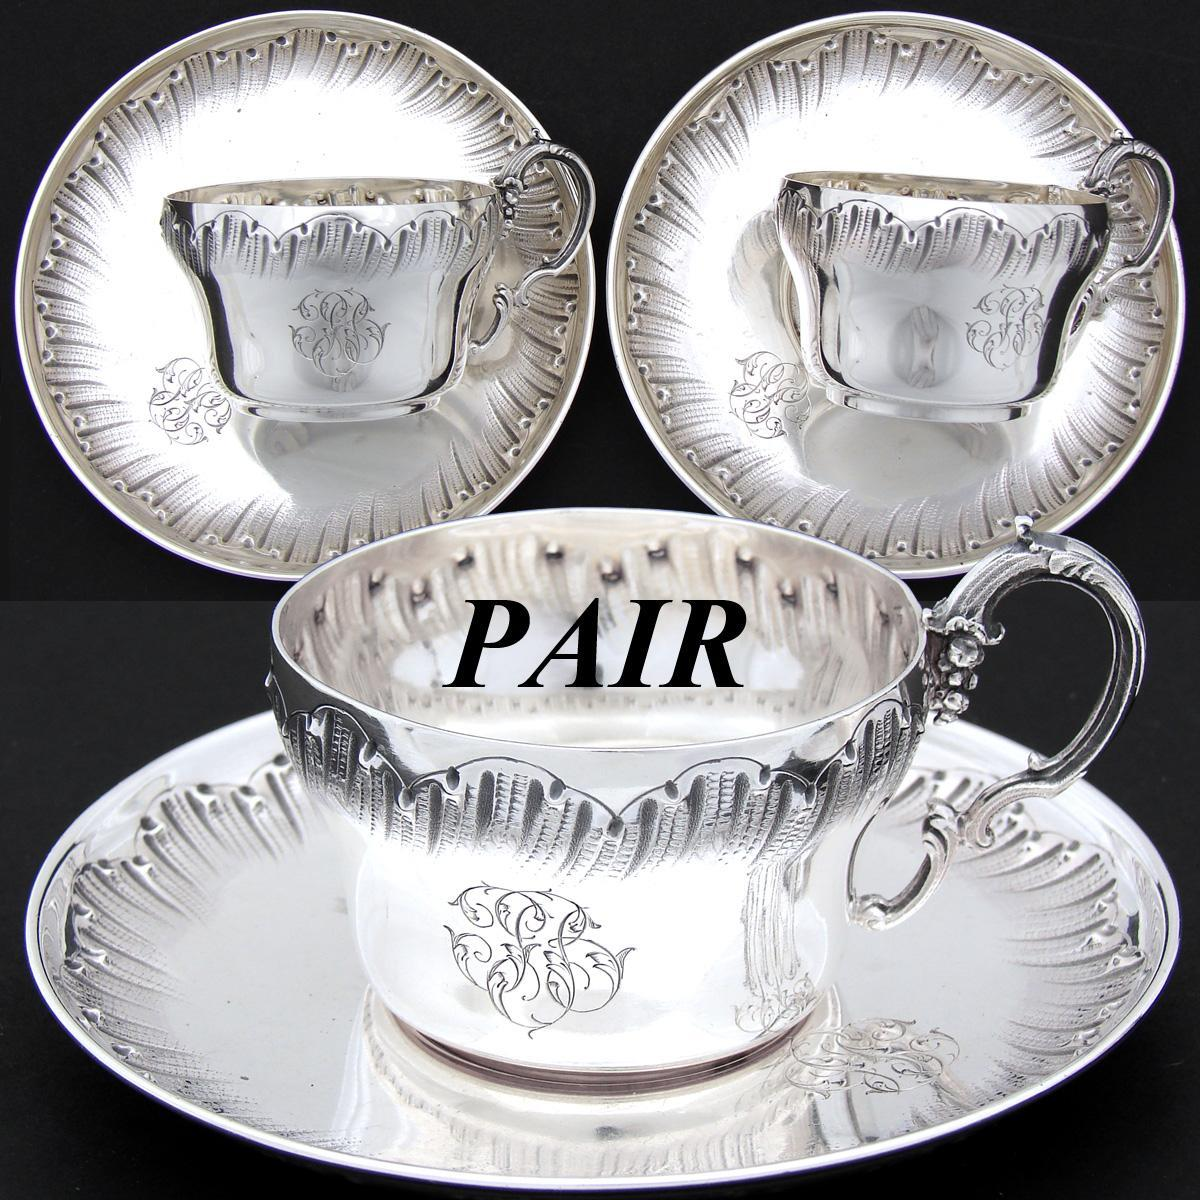 PAIR of Antique French Sterling Silver Demitasse Sized Tea Cup & Saucer Set, 4pc, Rococo Style